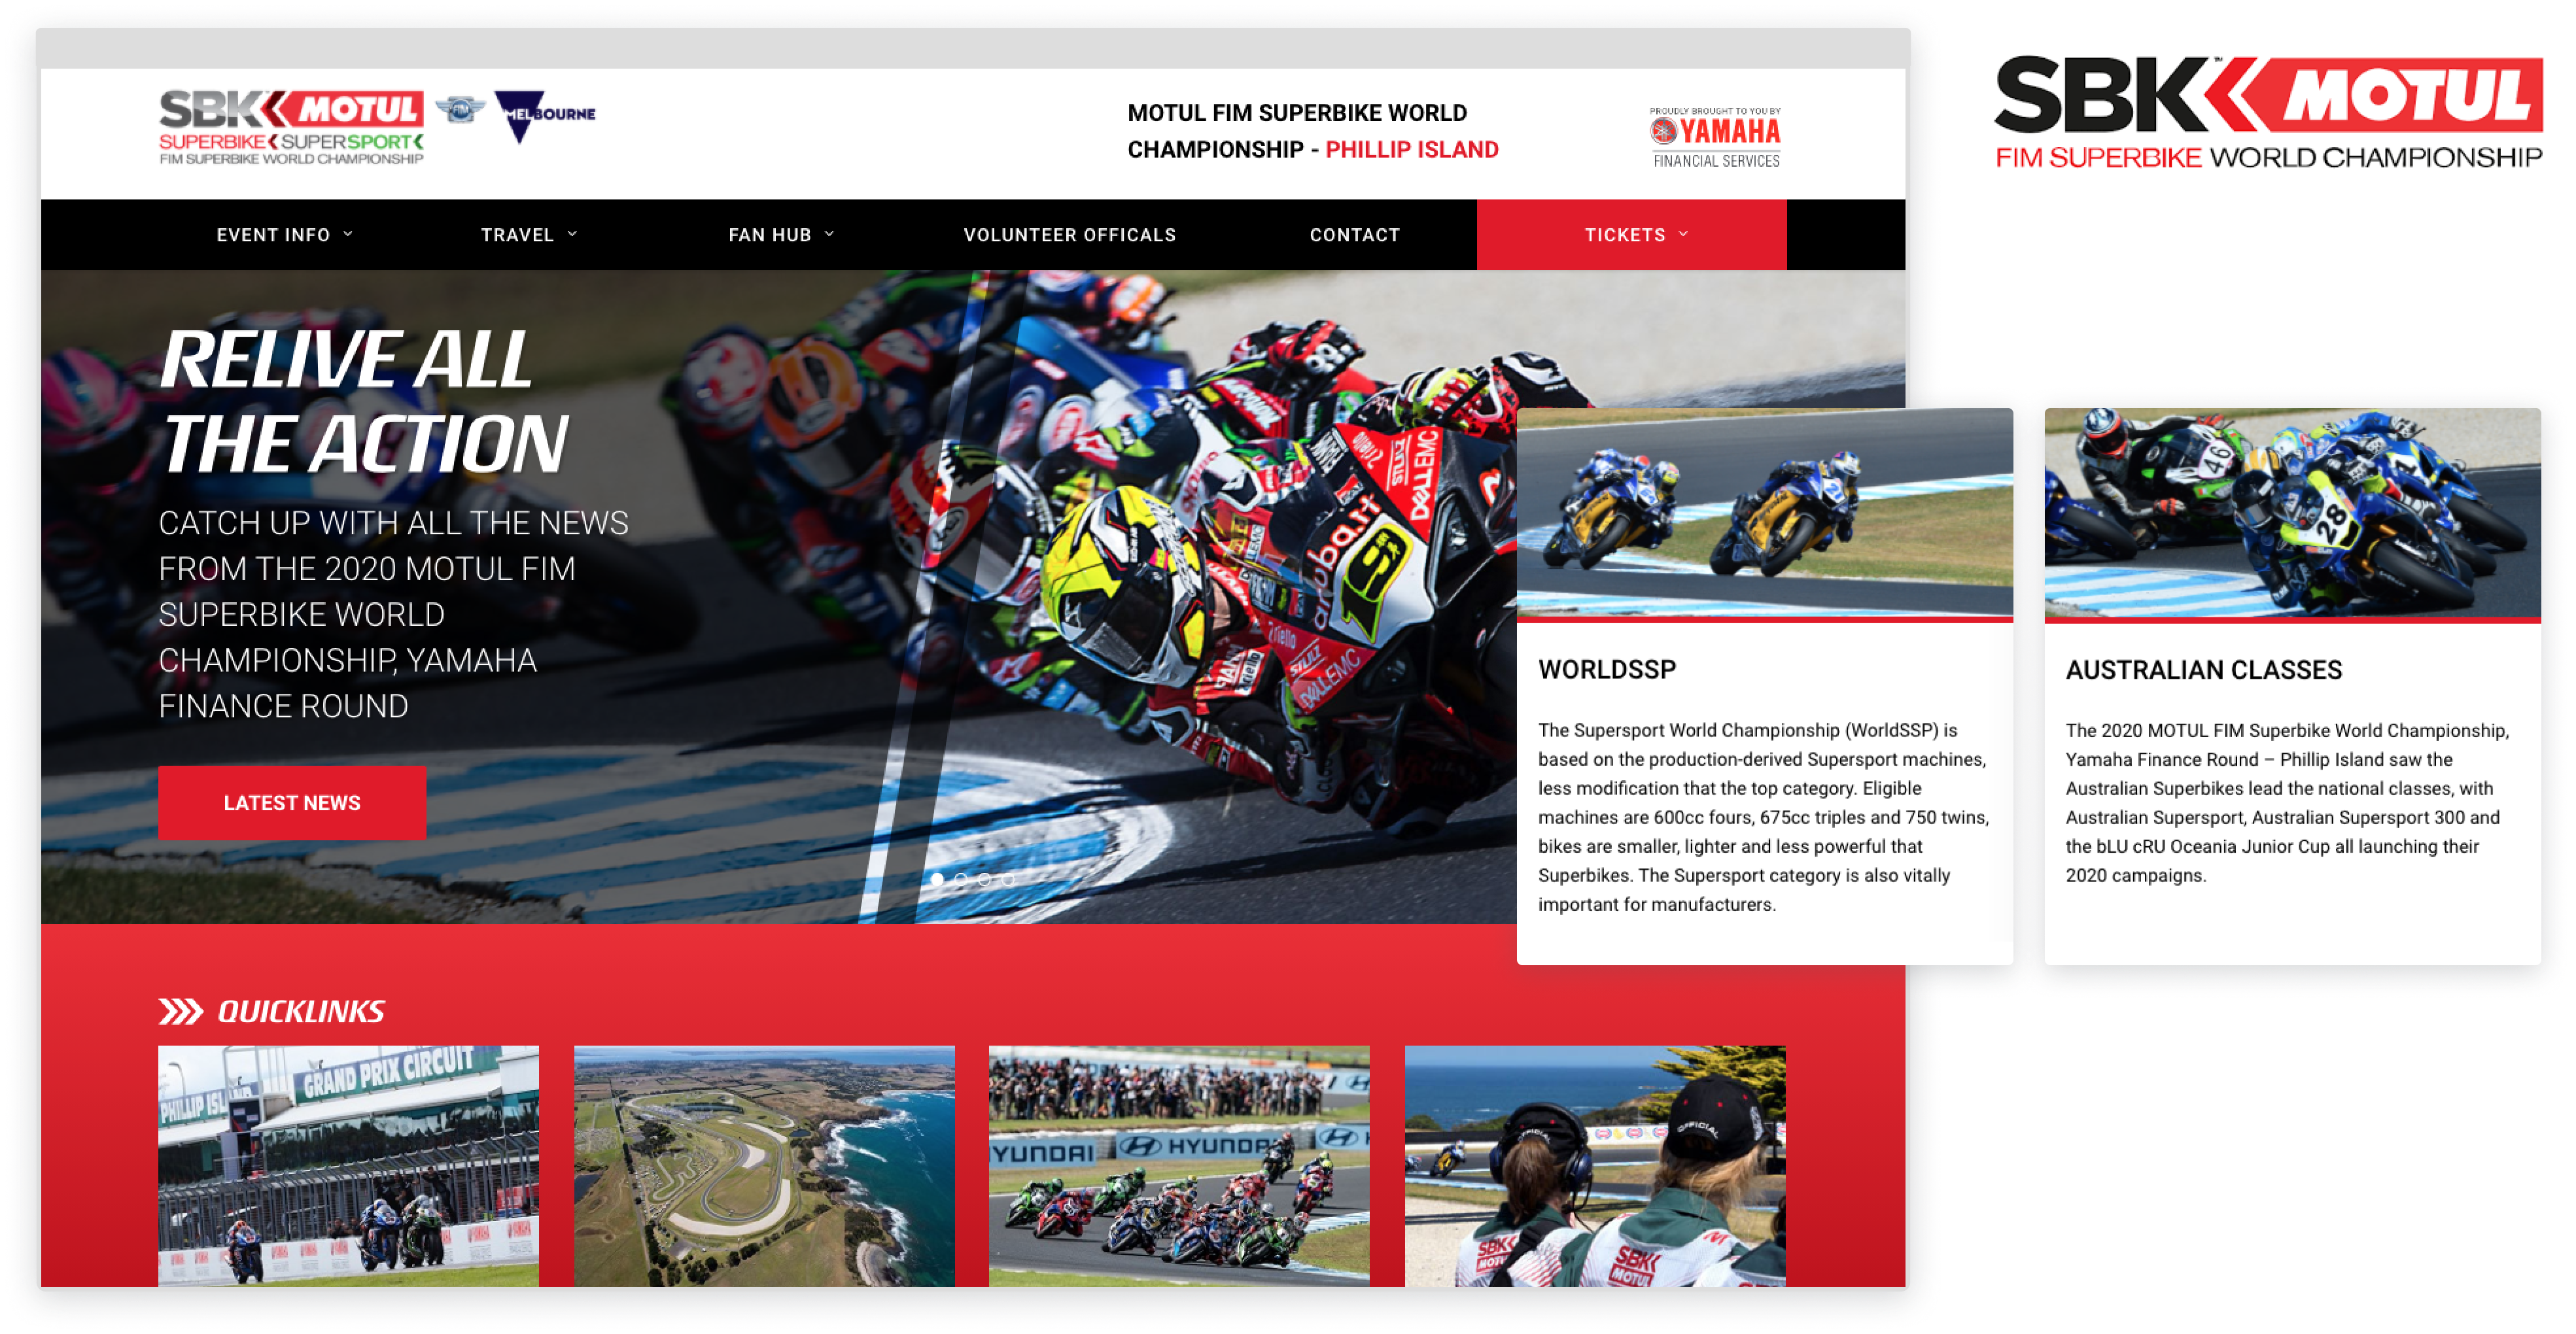 Phillip Island website pages